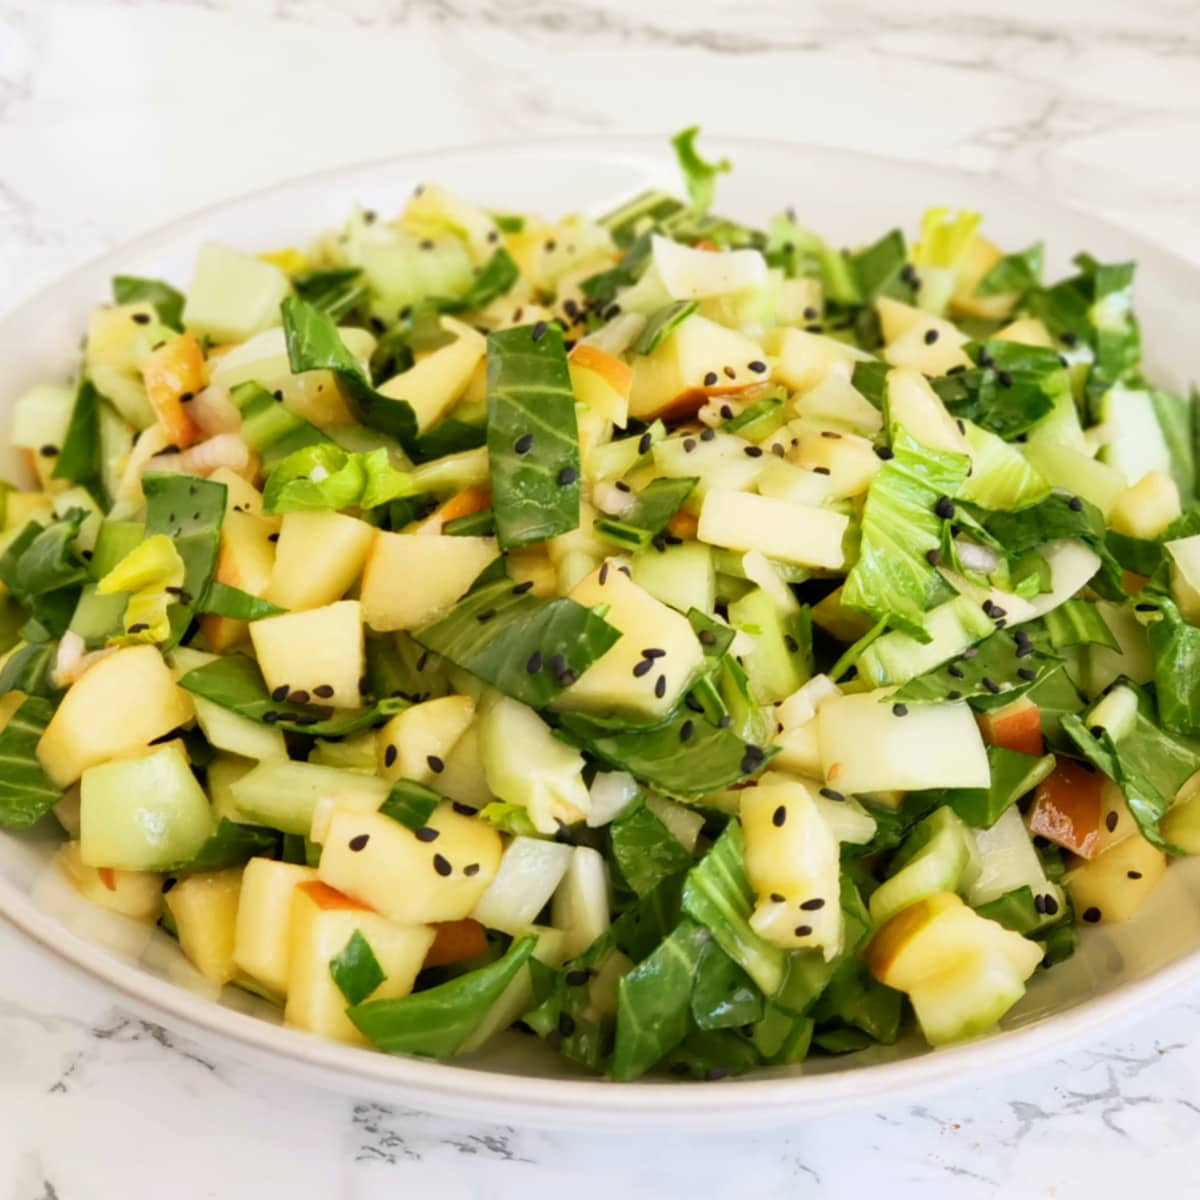 Lemony Baby Bok Choy, Apple and Miso Salad in a white bowl on a white marble counter top